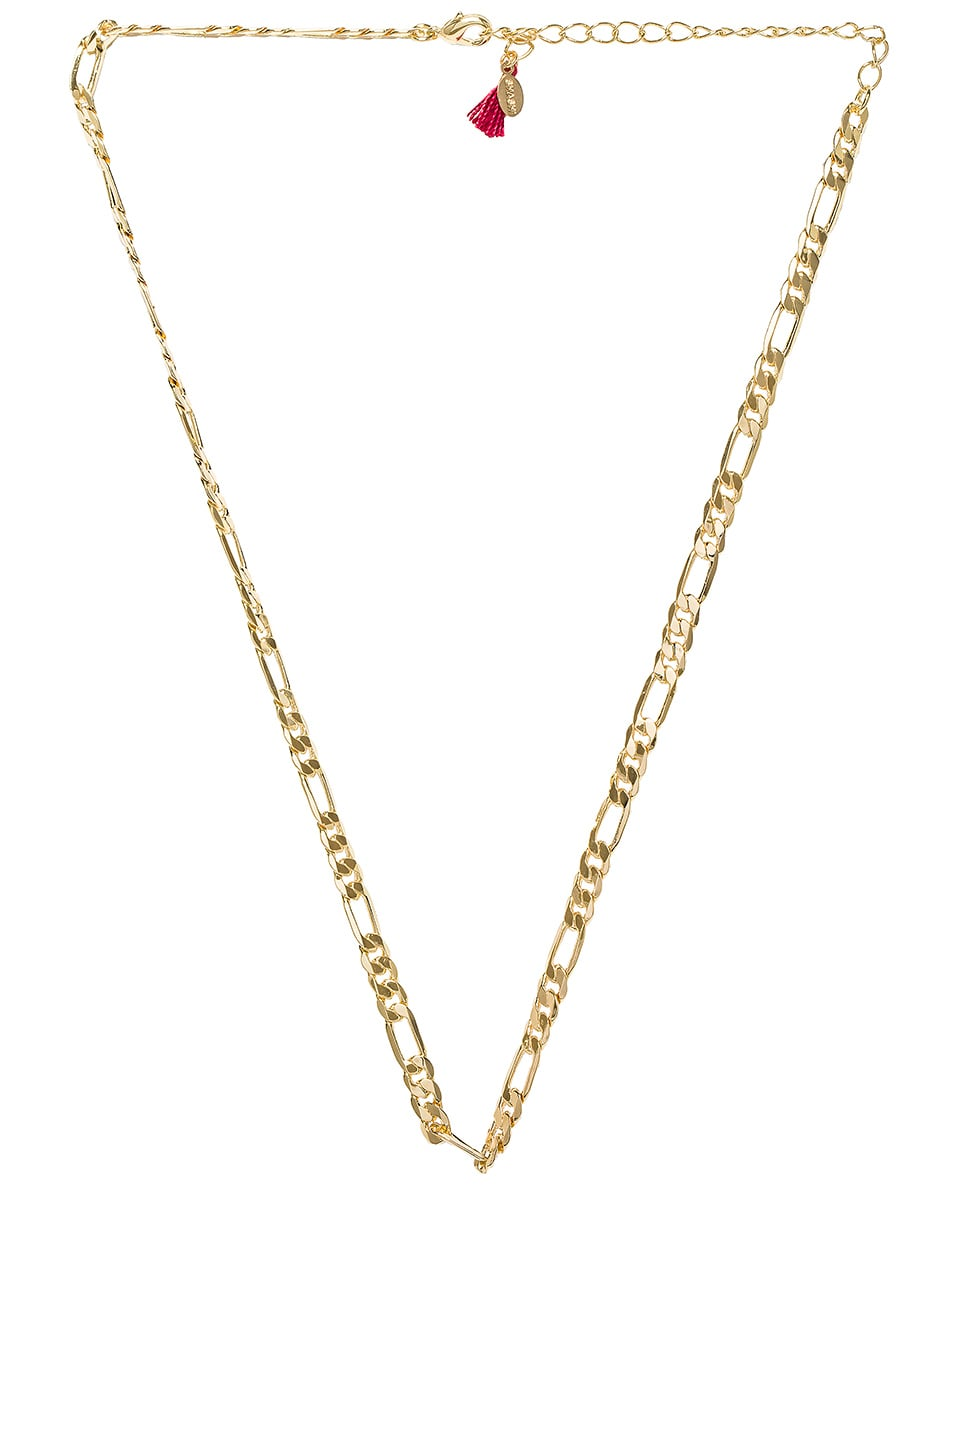 SHASHI Gina Necklace in Yellow Gold